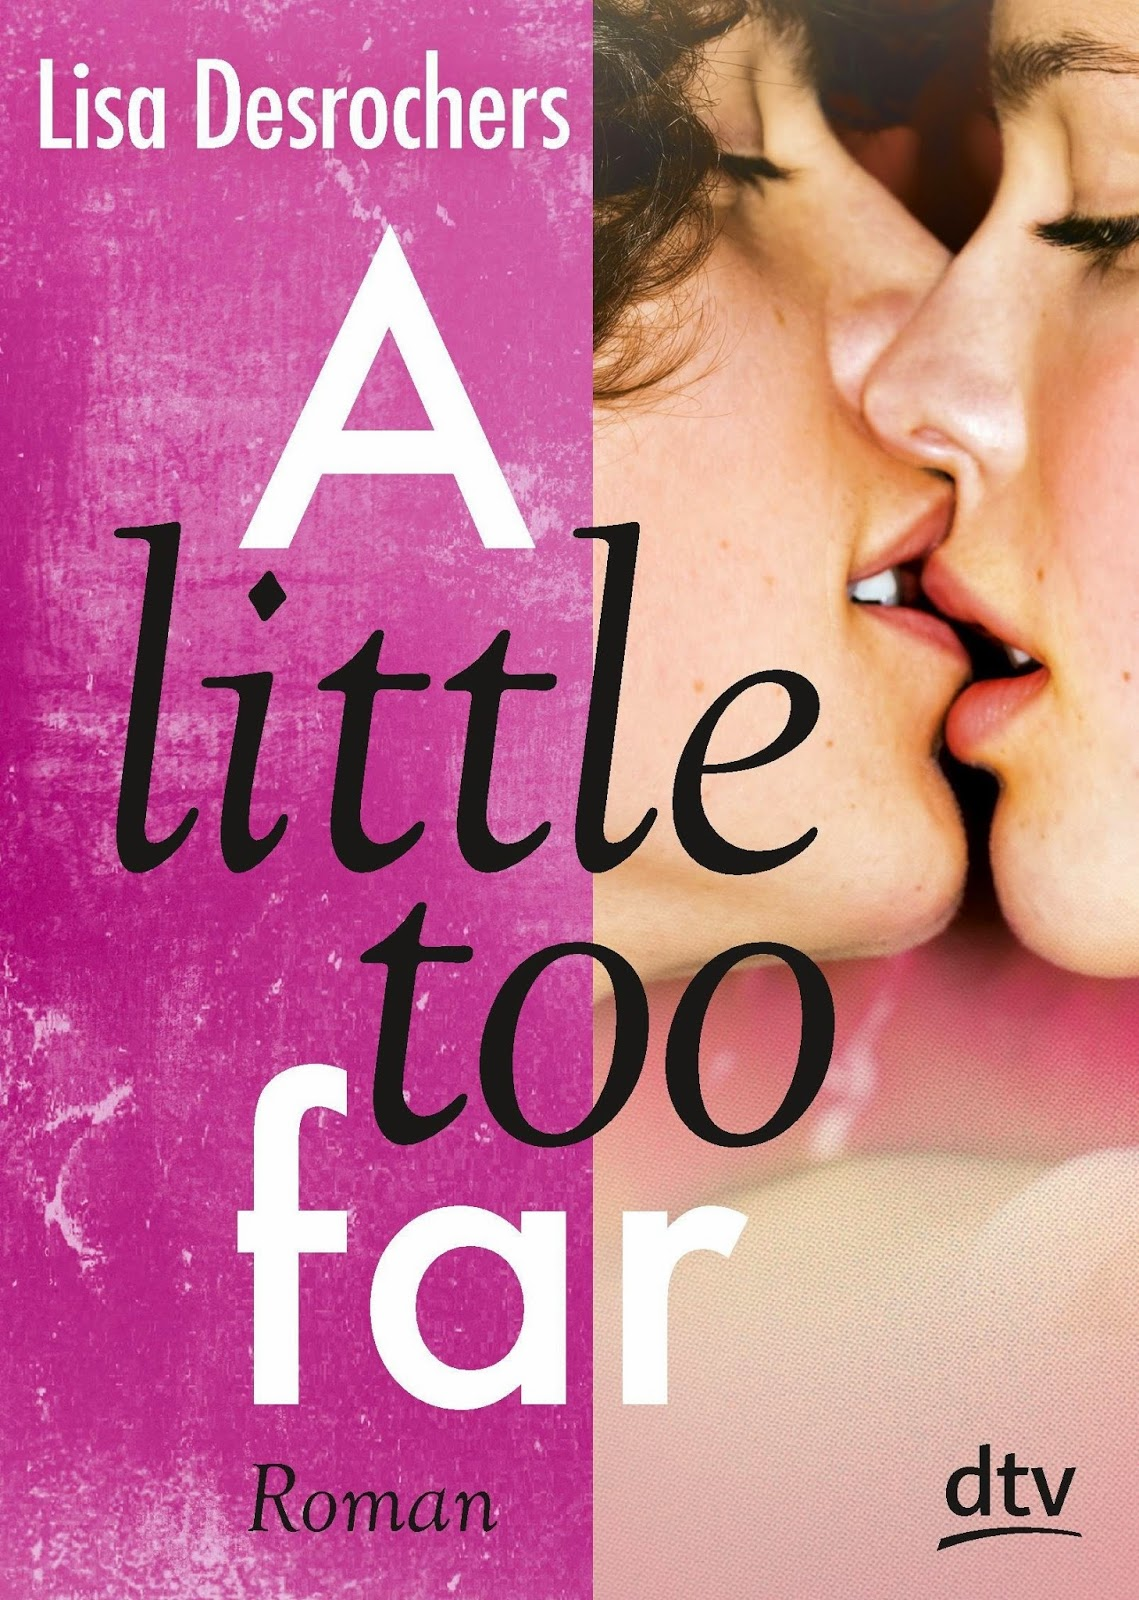 http://www.amazon.de/little-too-far-Roman/dp/342371607X/ref=sr_1_1_twi_1?ie=UTF8&qid=1416665337&sr=8-1&keywords=a+little+too+far